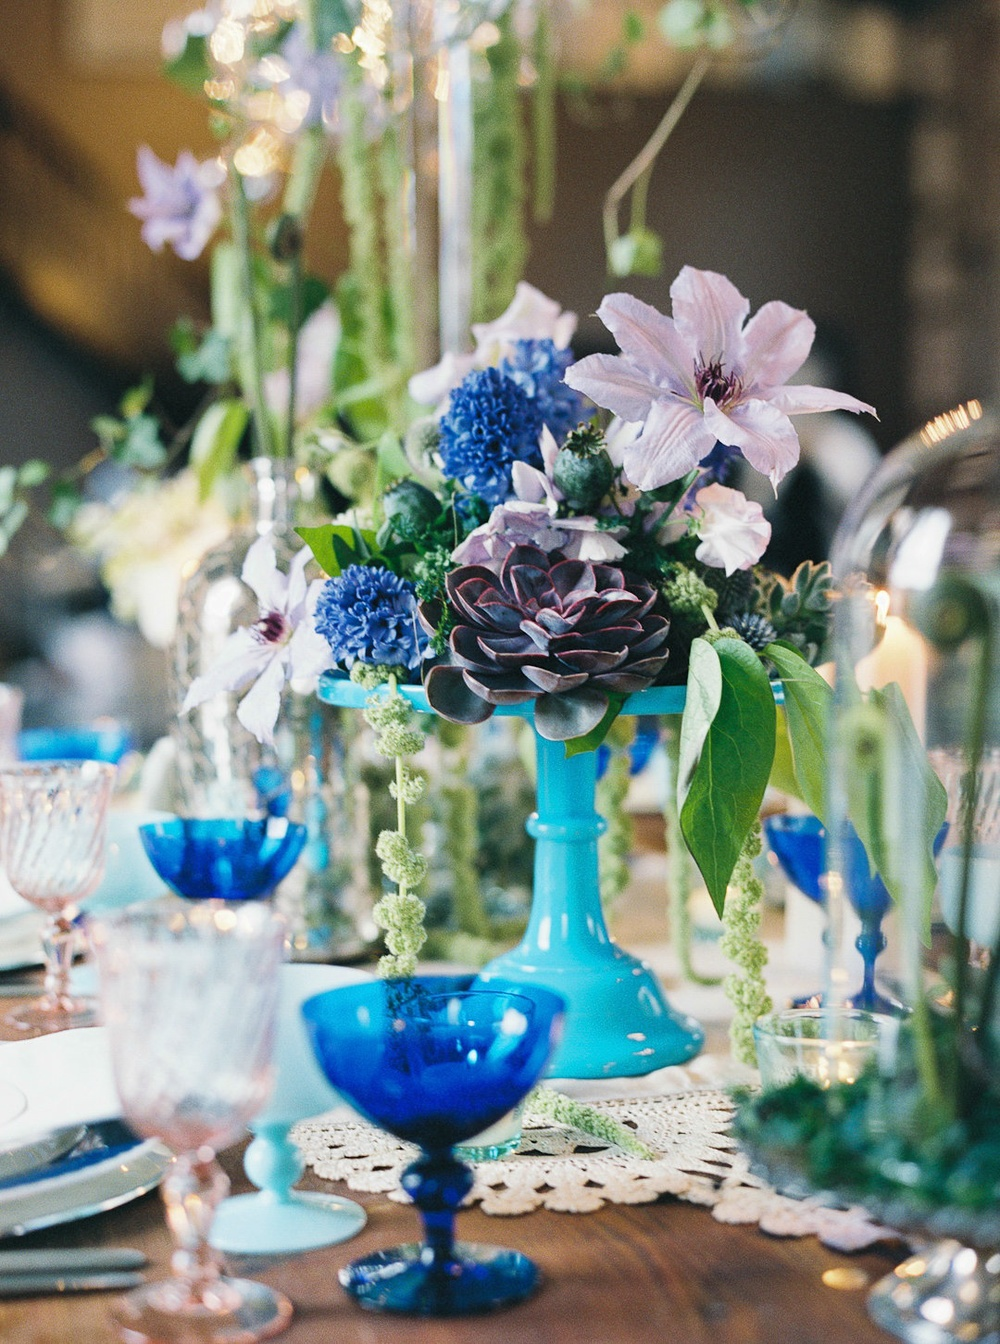 melissa kruse photography - bubbly bride styled shoot (the green building br_2.jpg